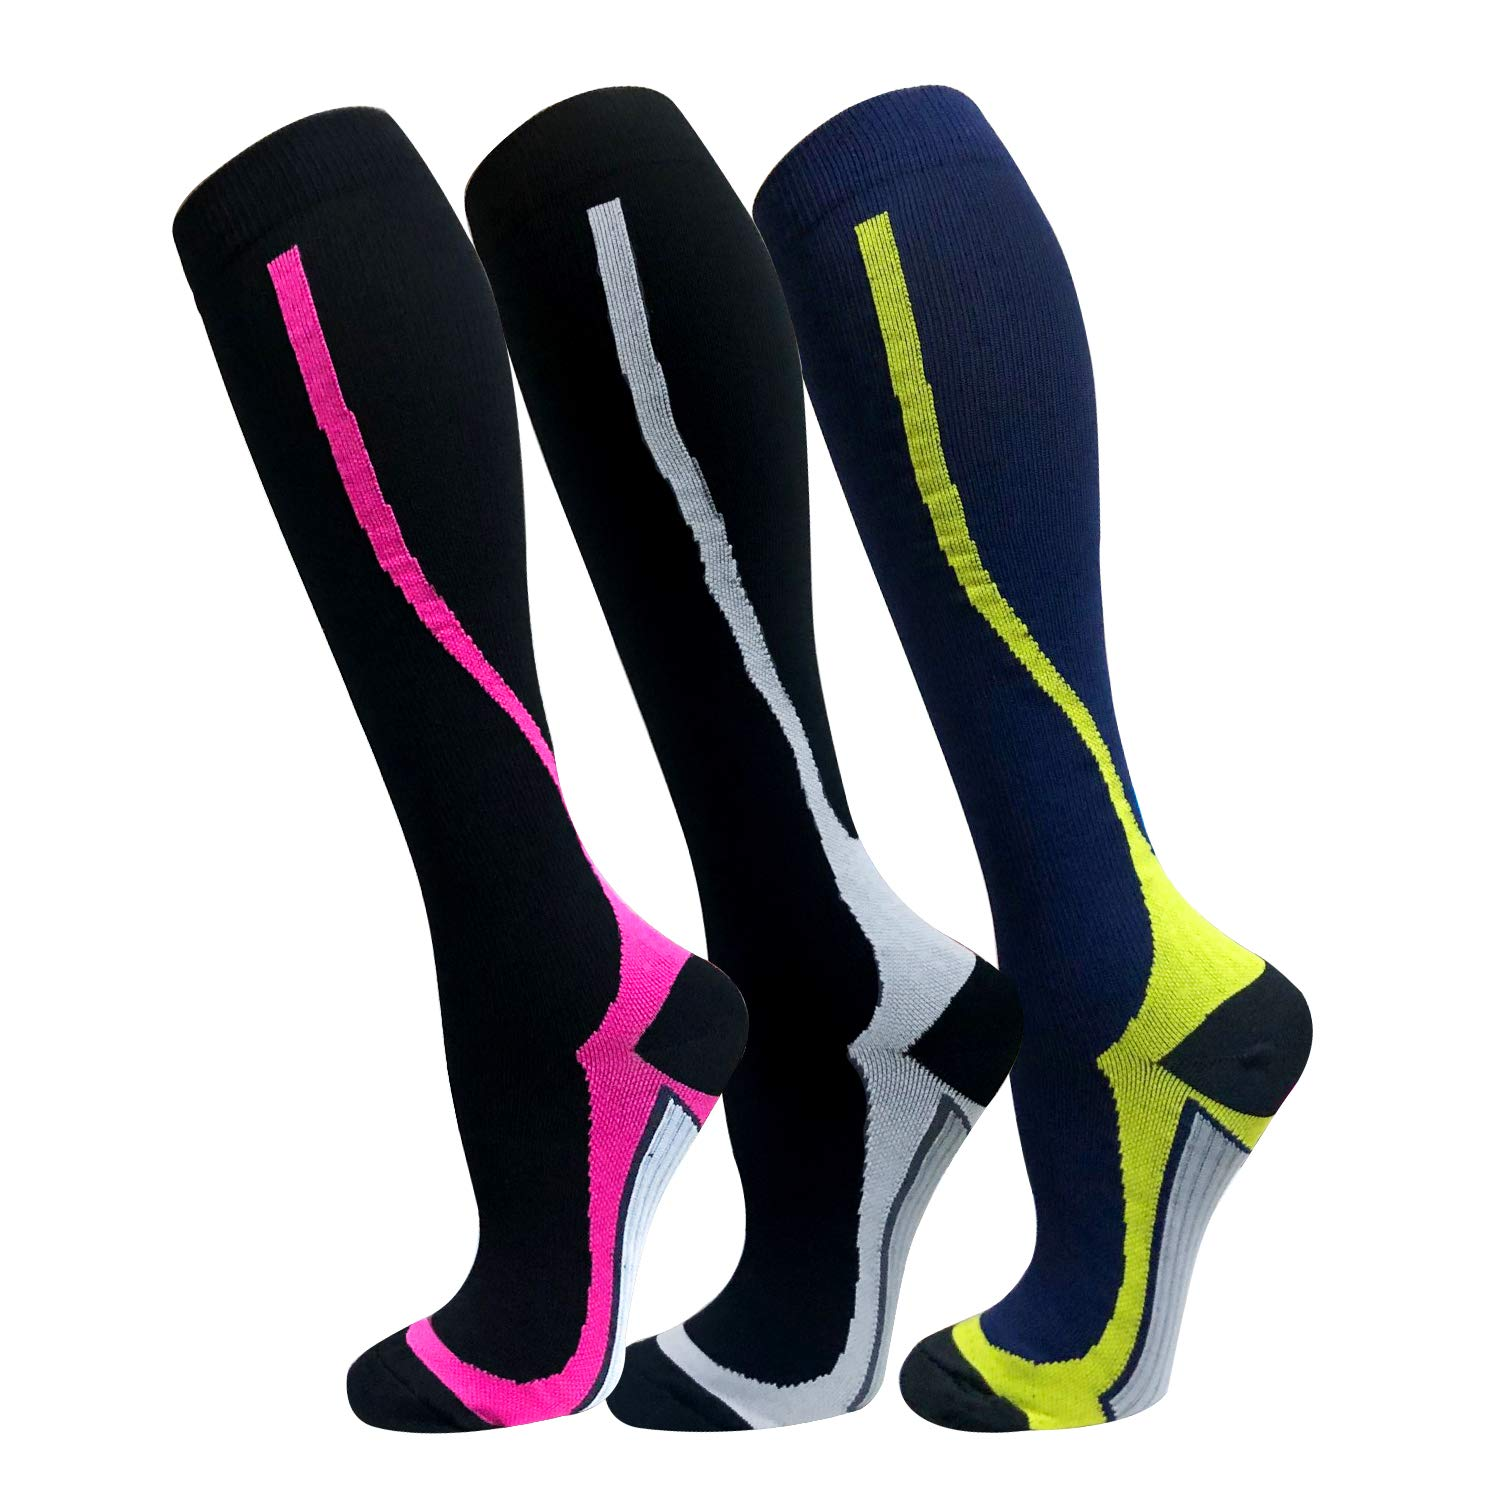 Copper Compression Socks For Men & Women(3 Pairs),15-20mmHg is Best For Running,Athletic,Medical,Pregnancy and Travel (S/M, Multicoloured 21)